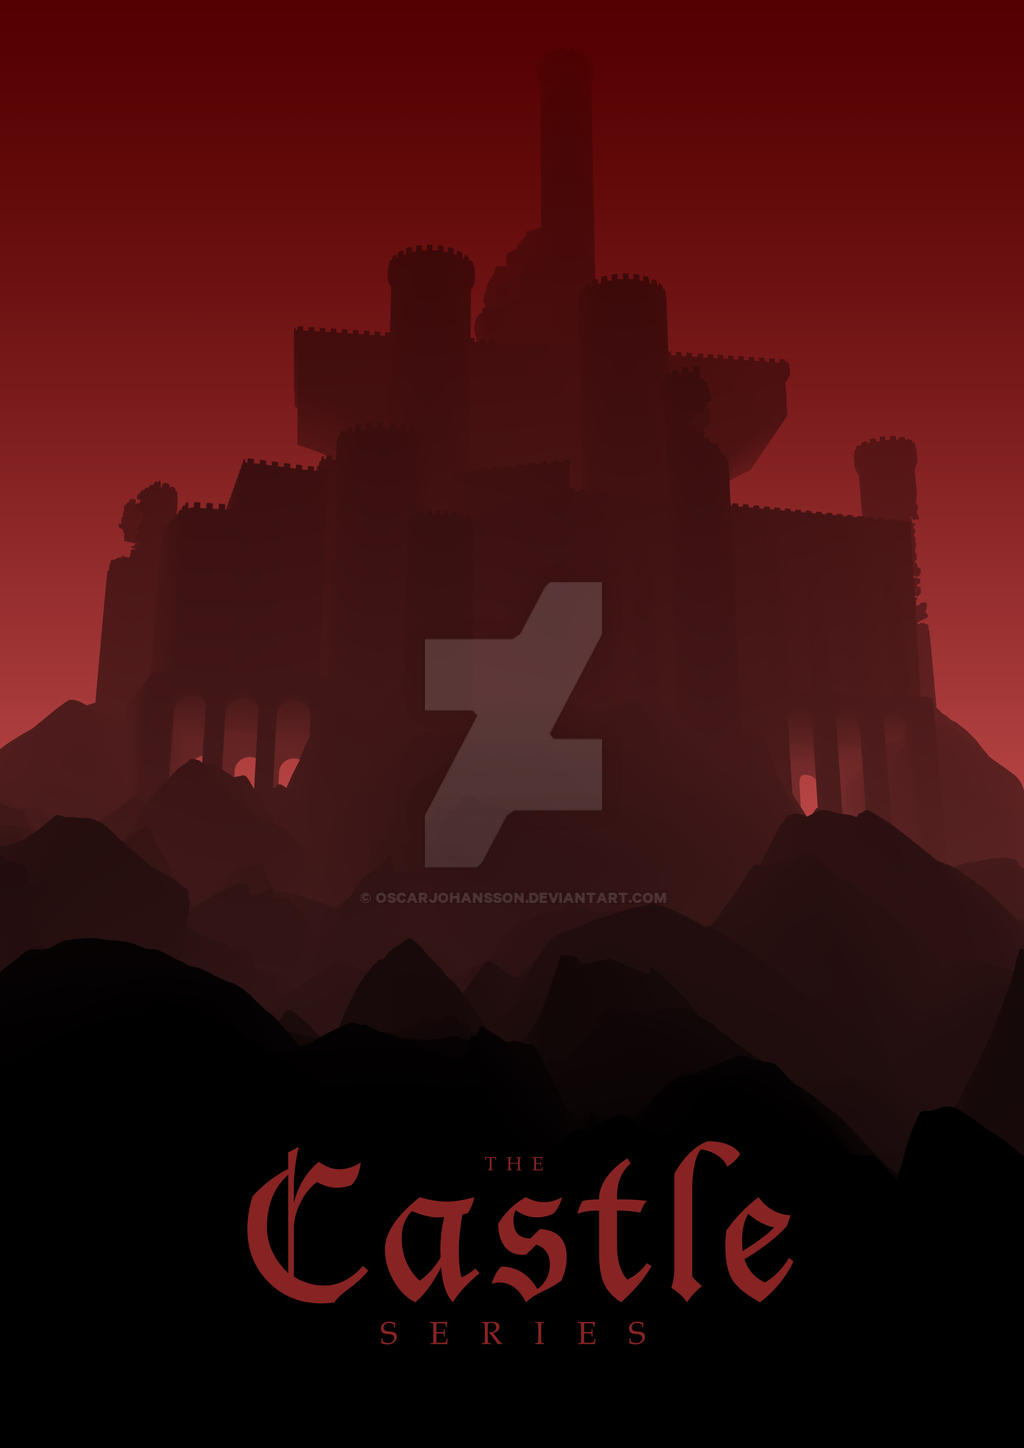 Red Castle Series Poster by OscarJohansson